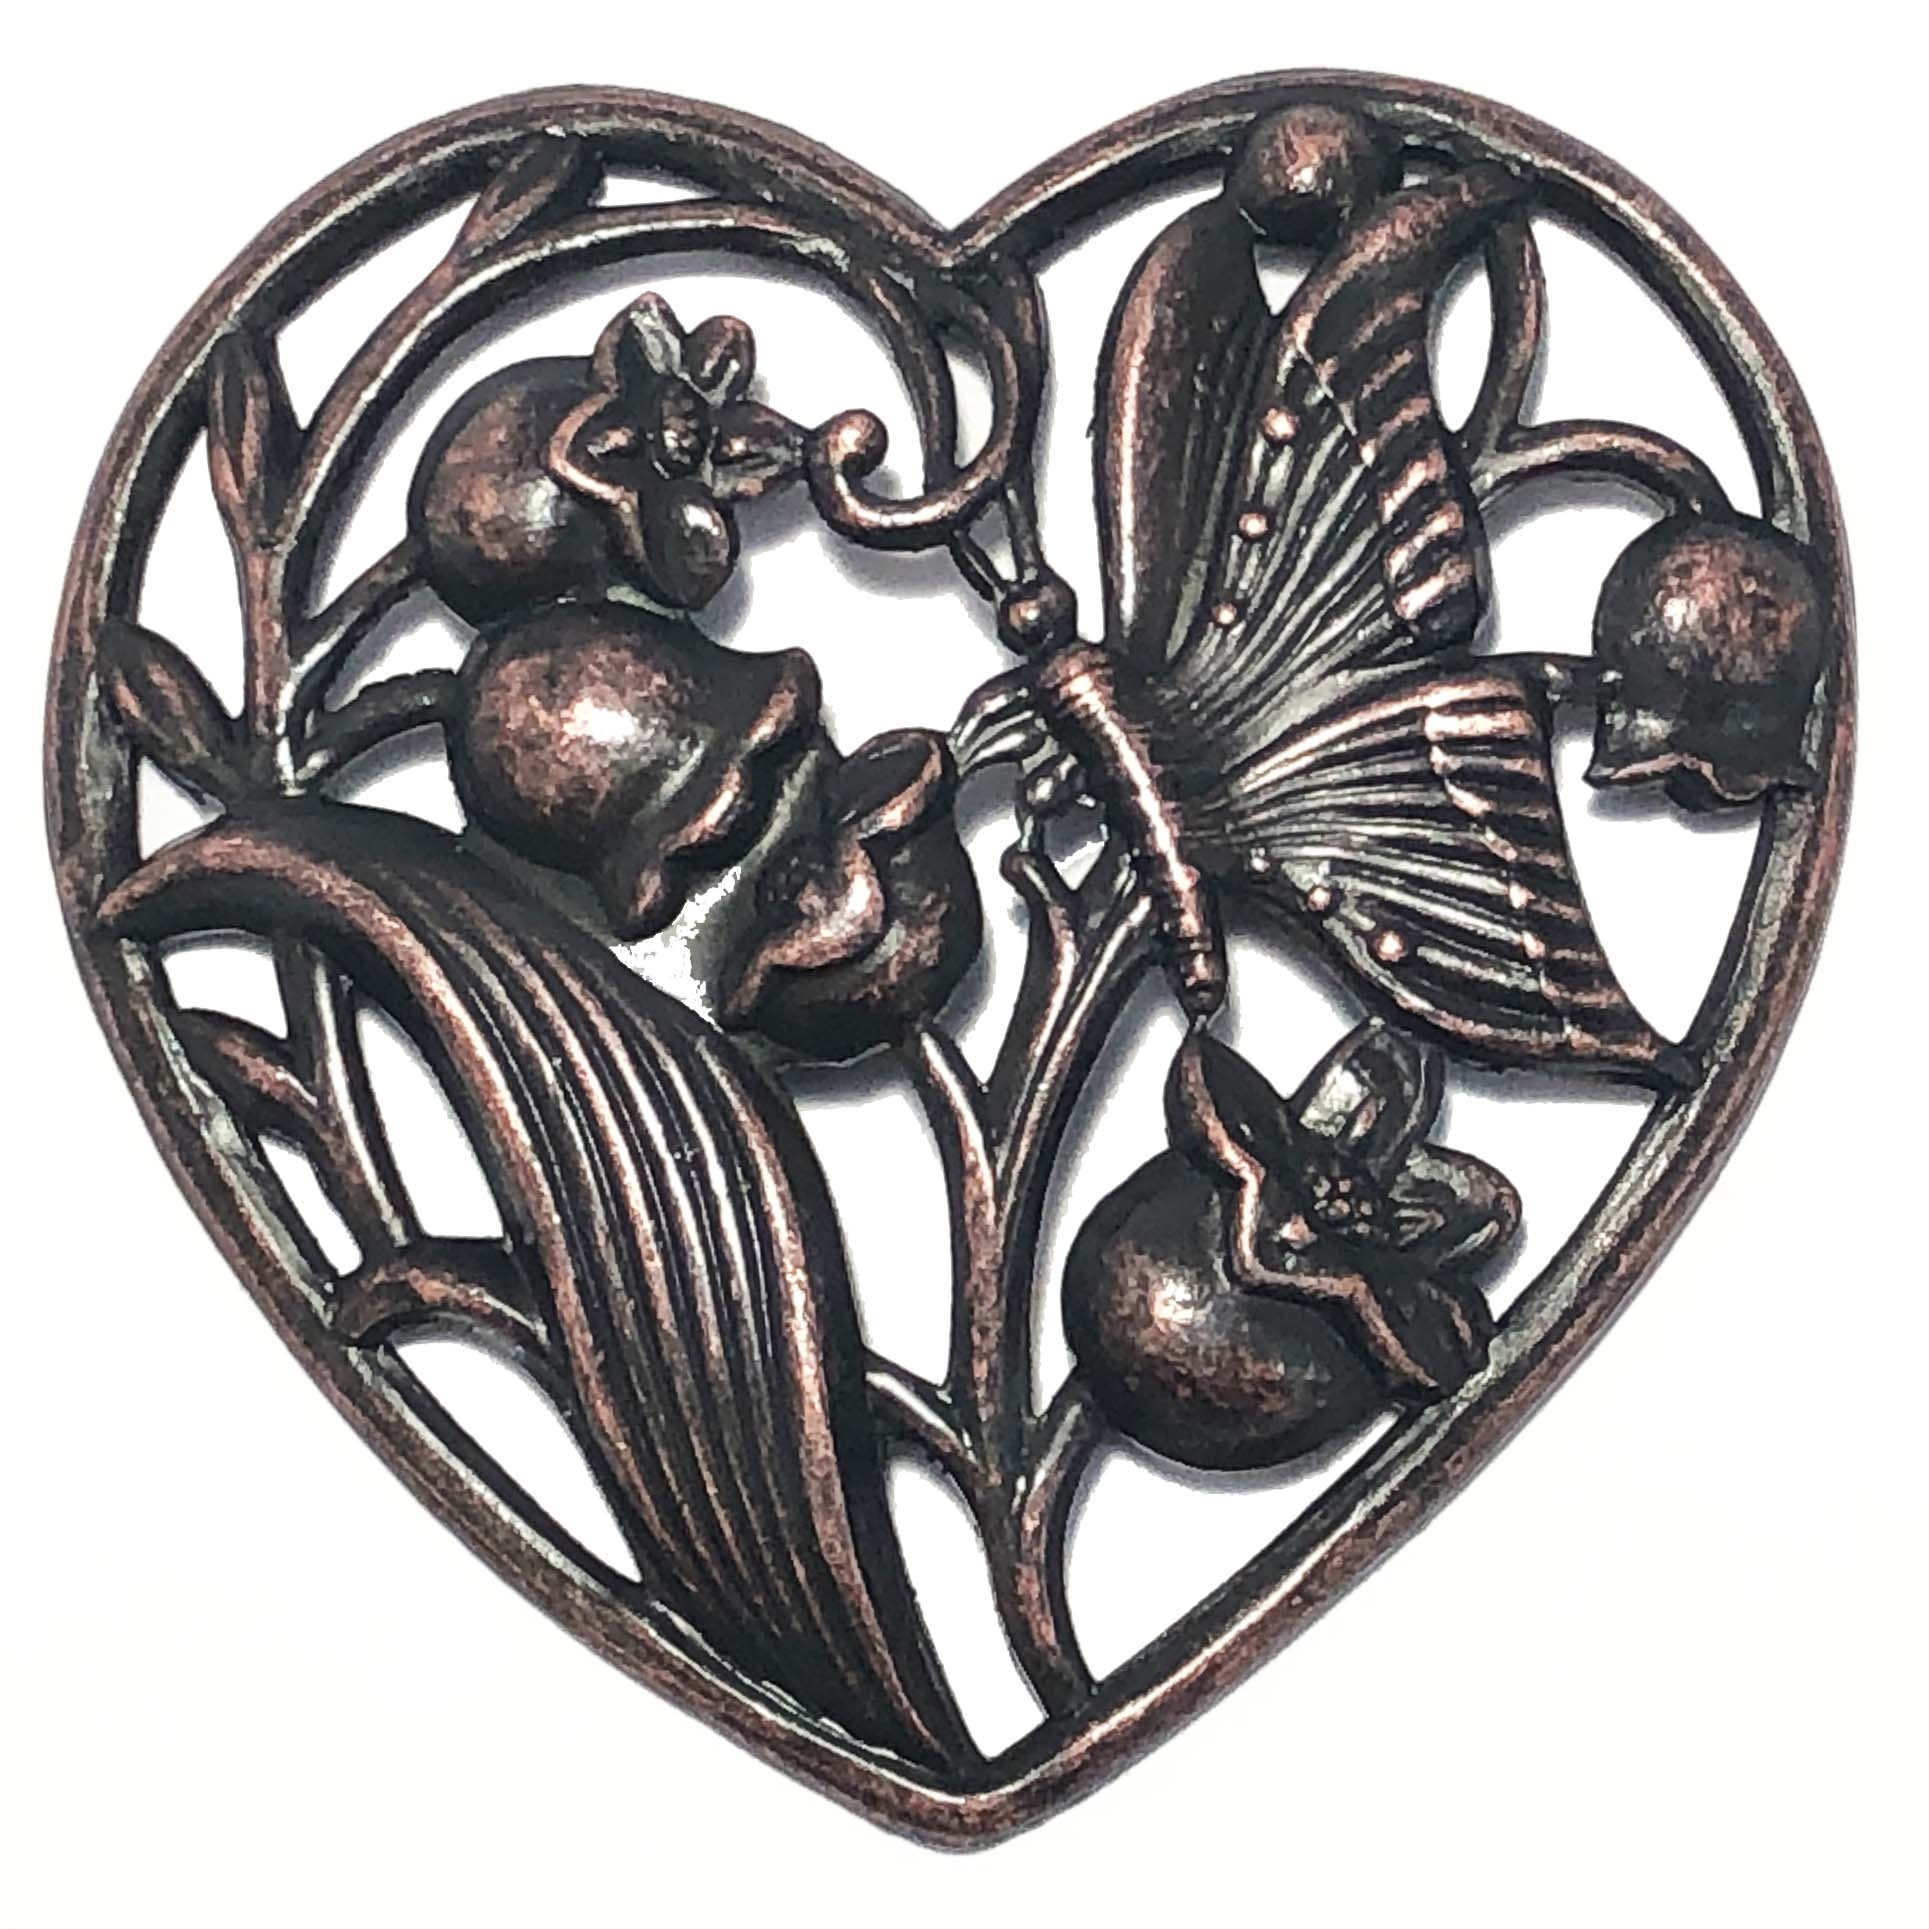 brass hearts, lily of the valley heart, heart stampings, filigree hearts, 09588, jewelry making, silverware silver plate, black antiquing, jewelry making supplies, vintage jewelry supplies, US made, nickel free jewelry supplies